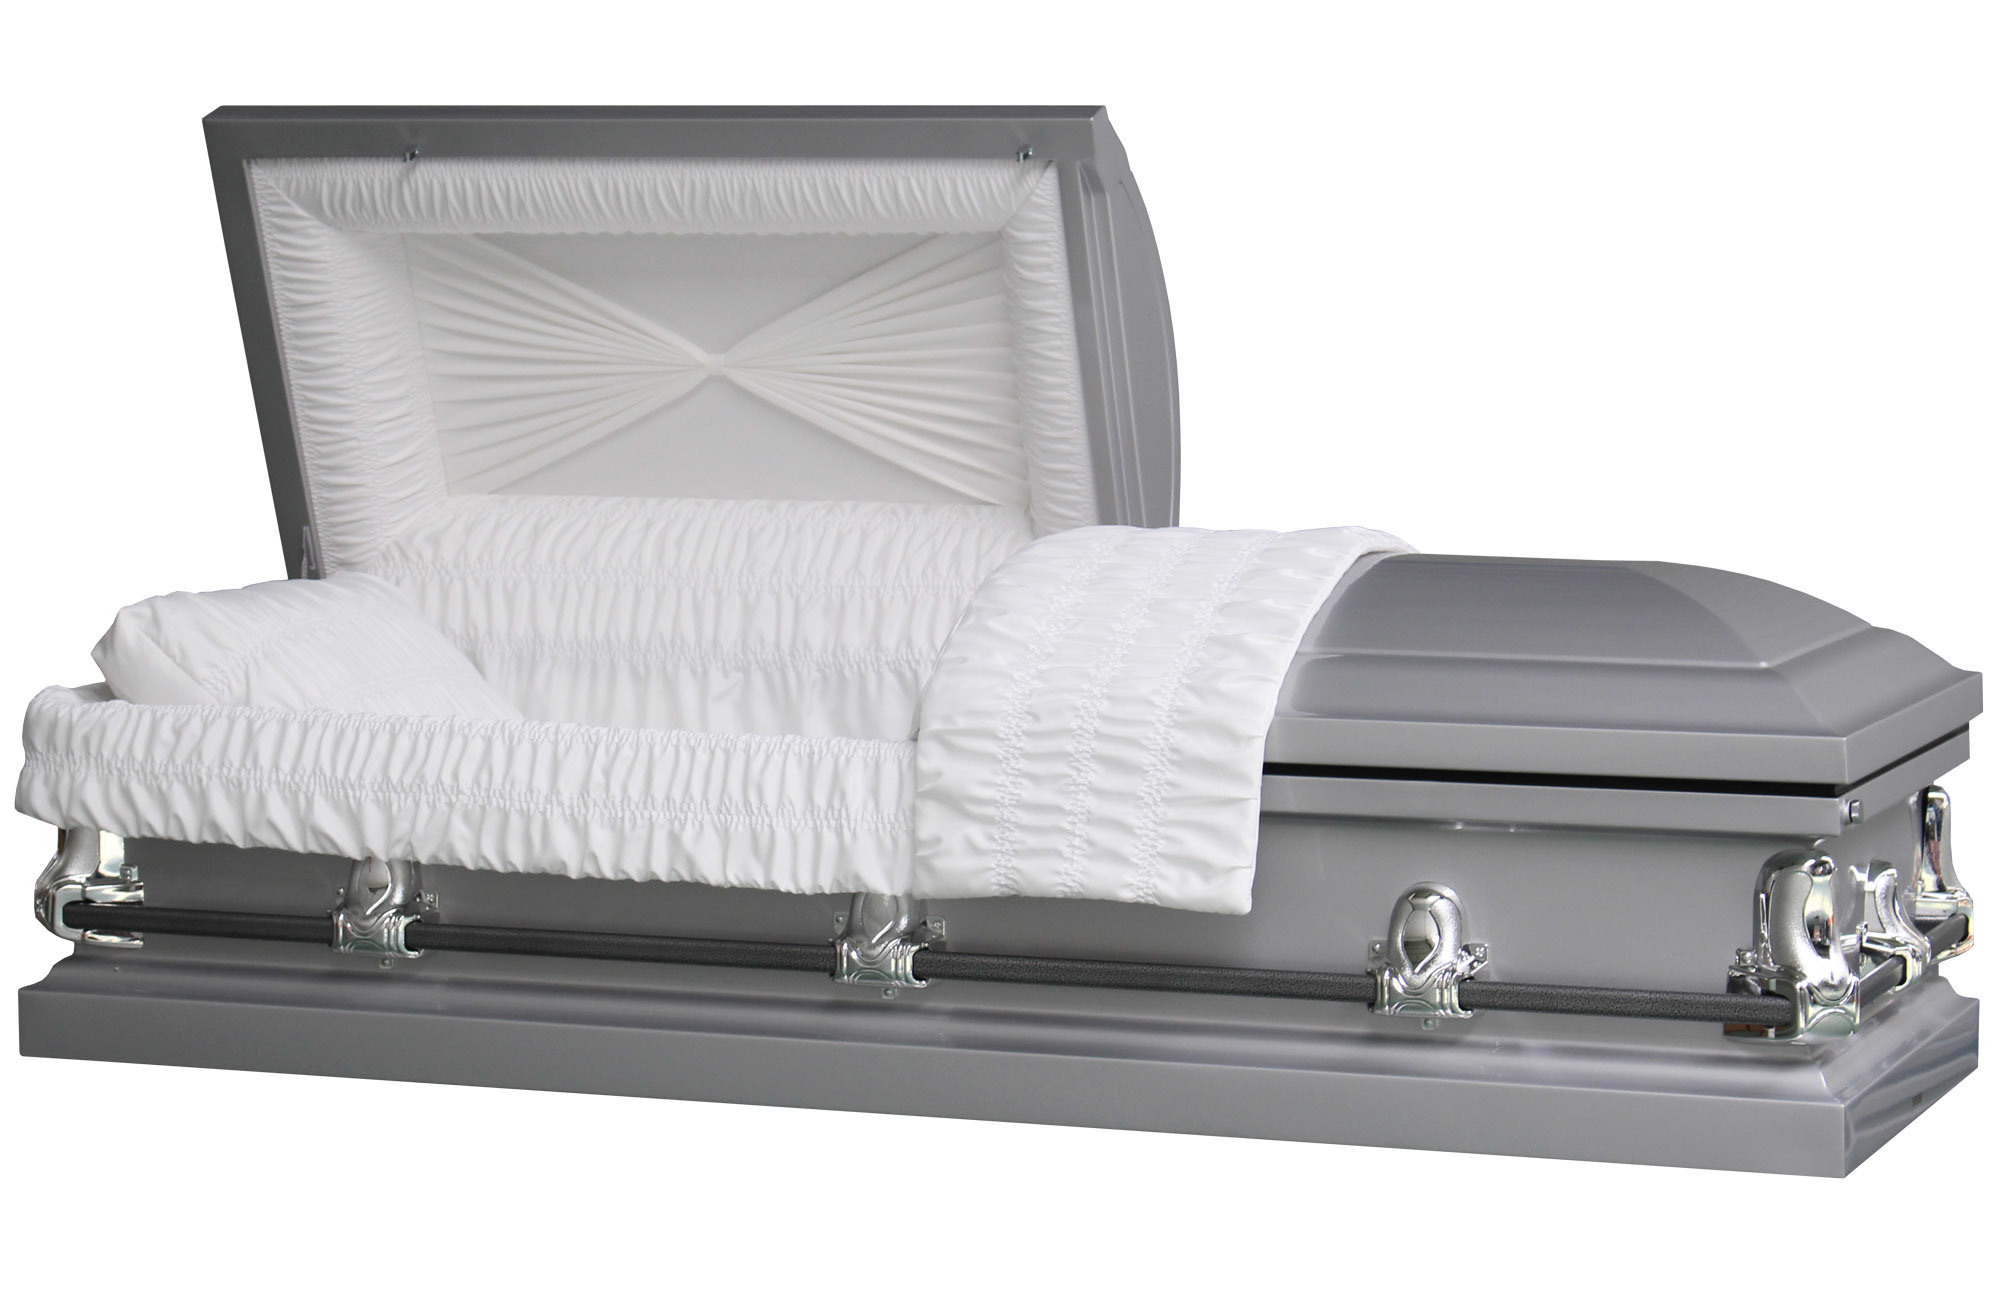 18 Ga Steel Mother Suqare Corner Us Casket